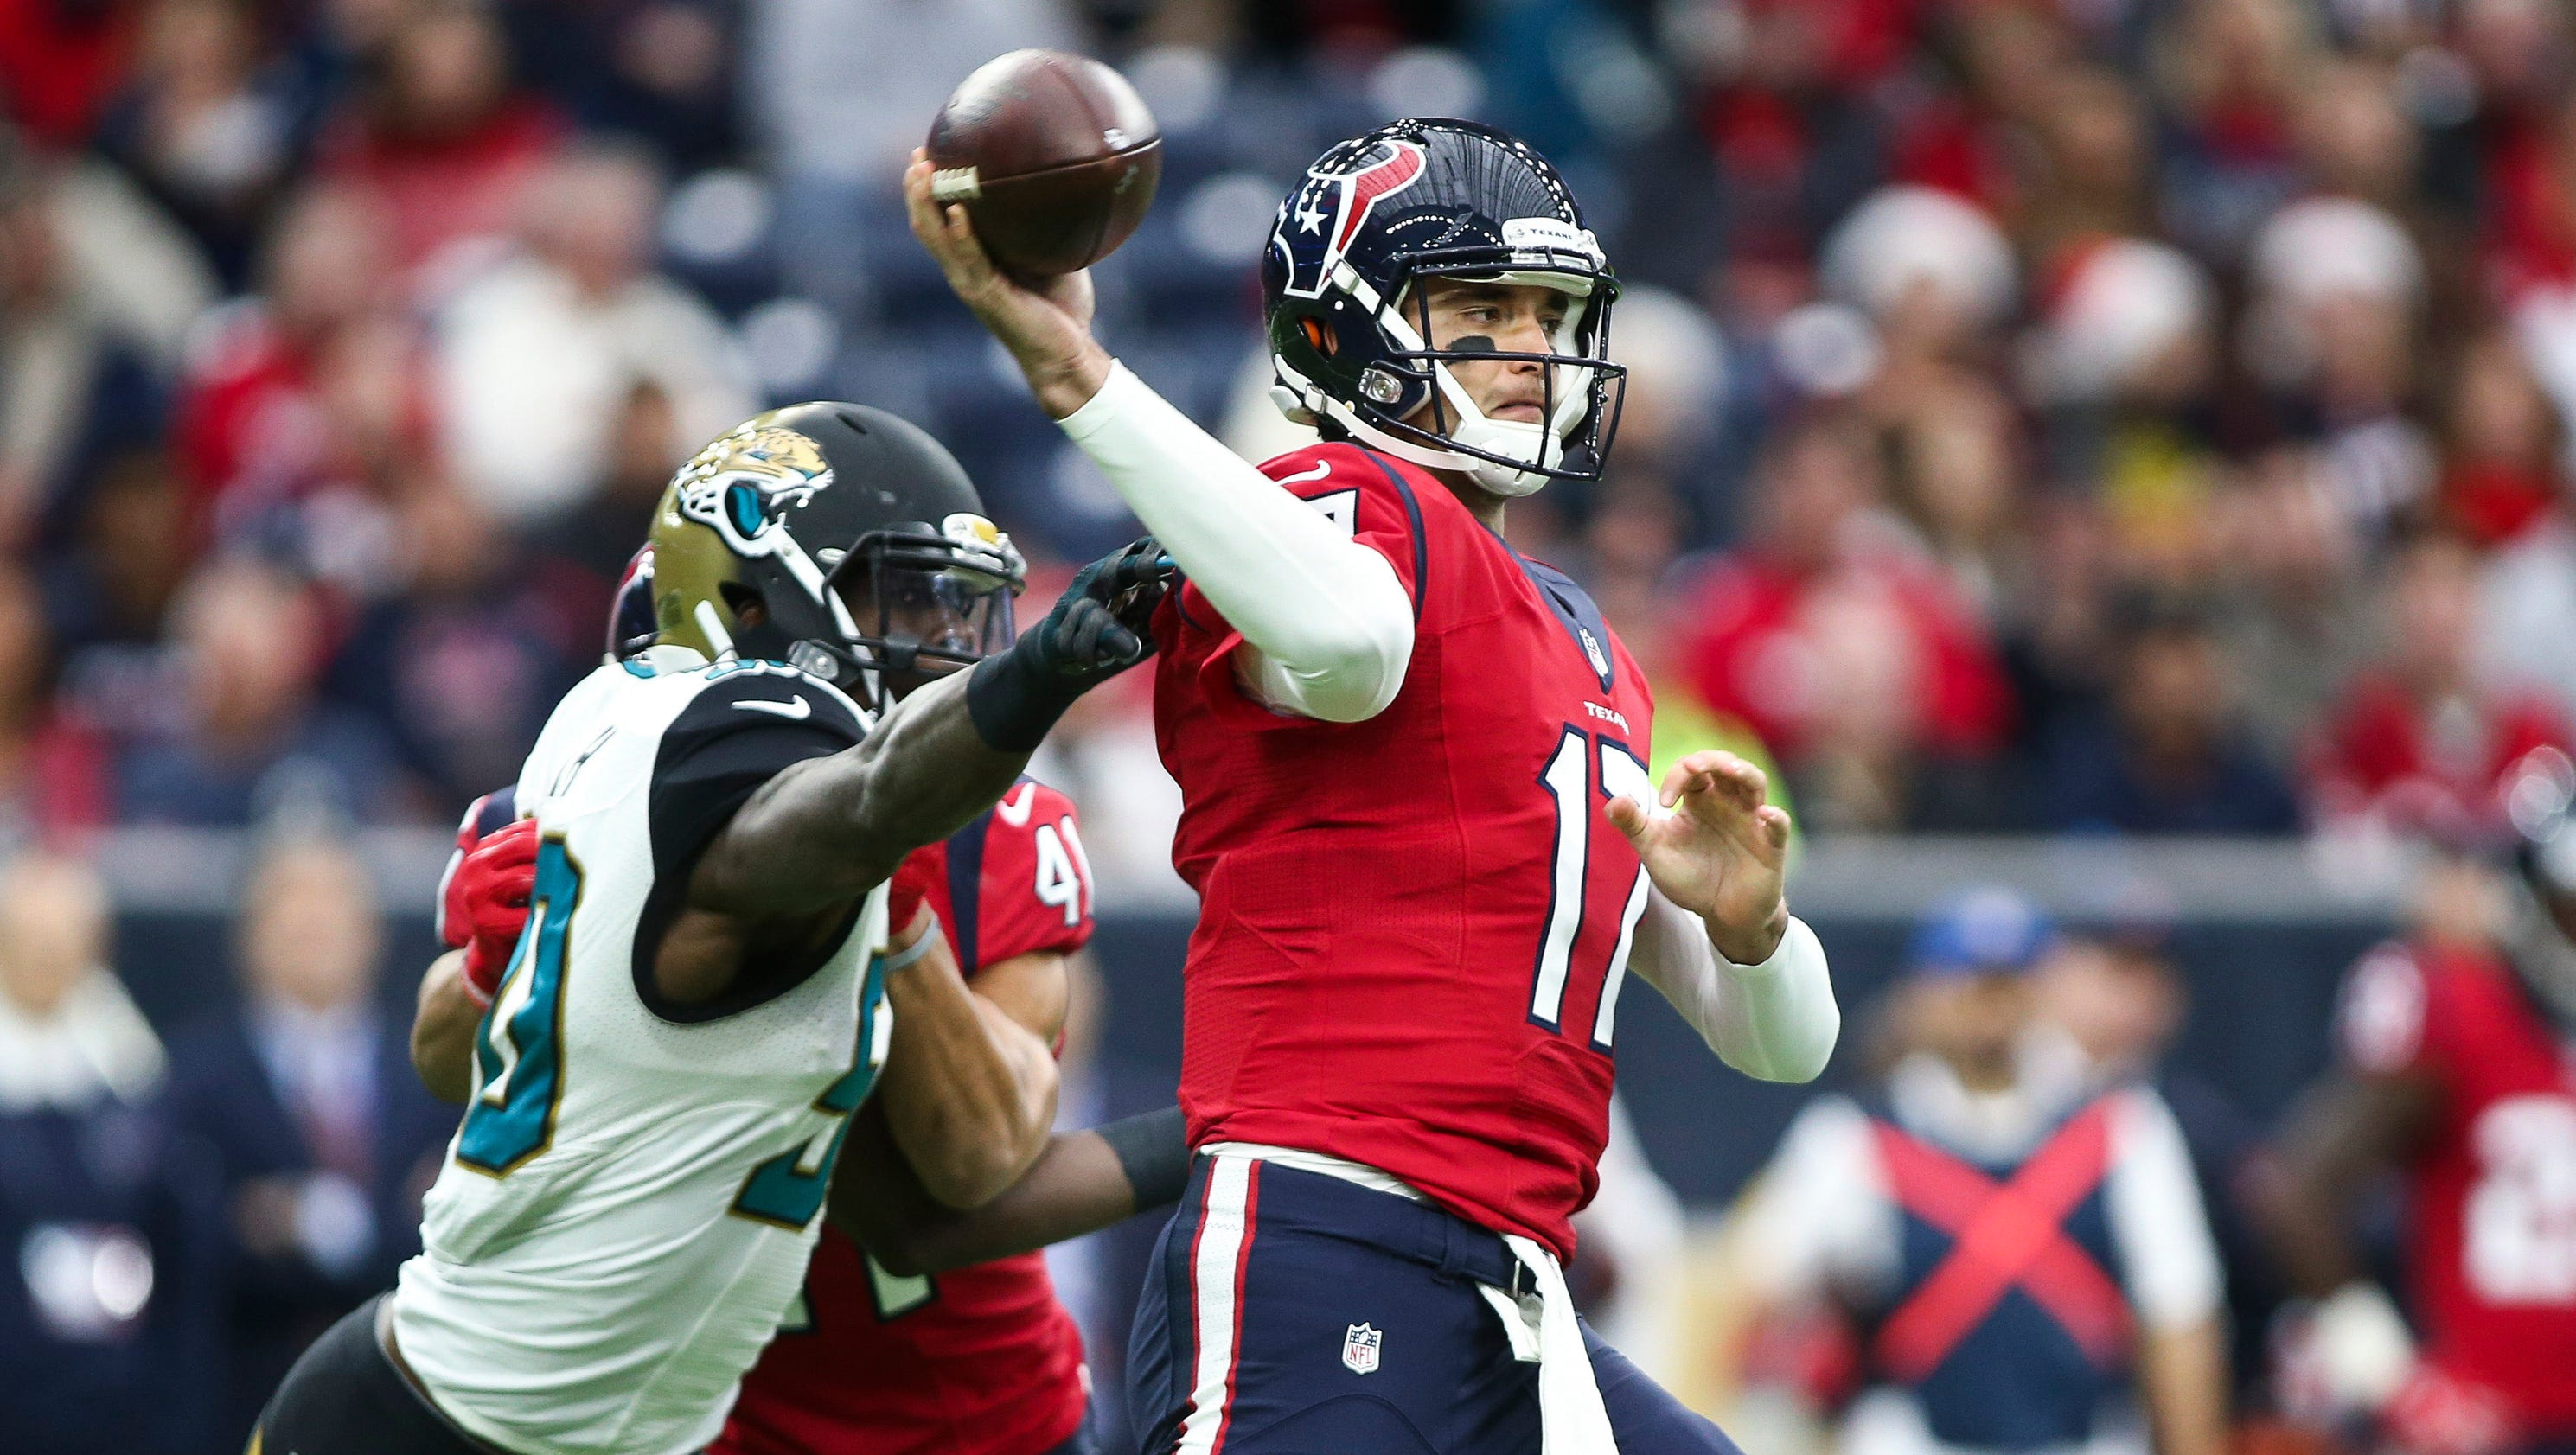 Brock Osweiler S Benching Leaves Texans Qb Picture Cloudy